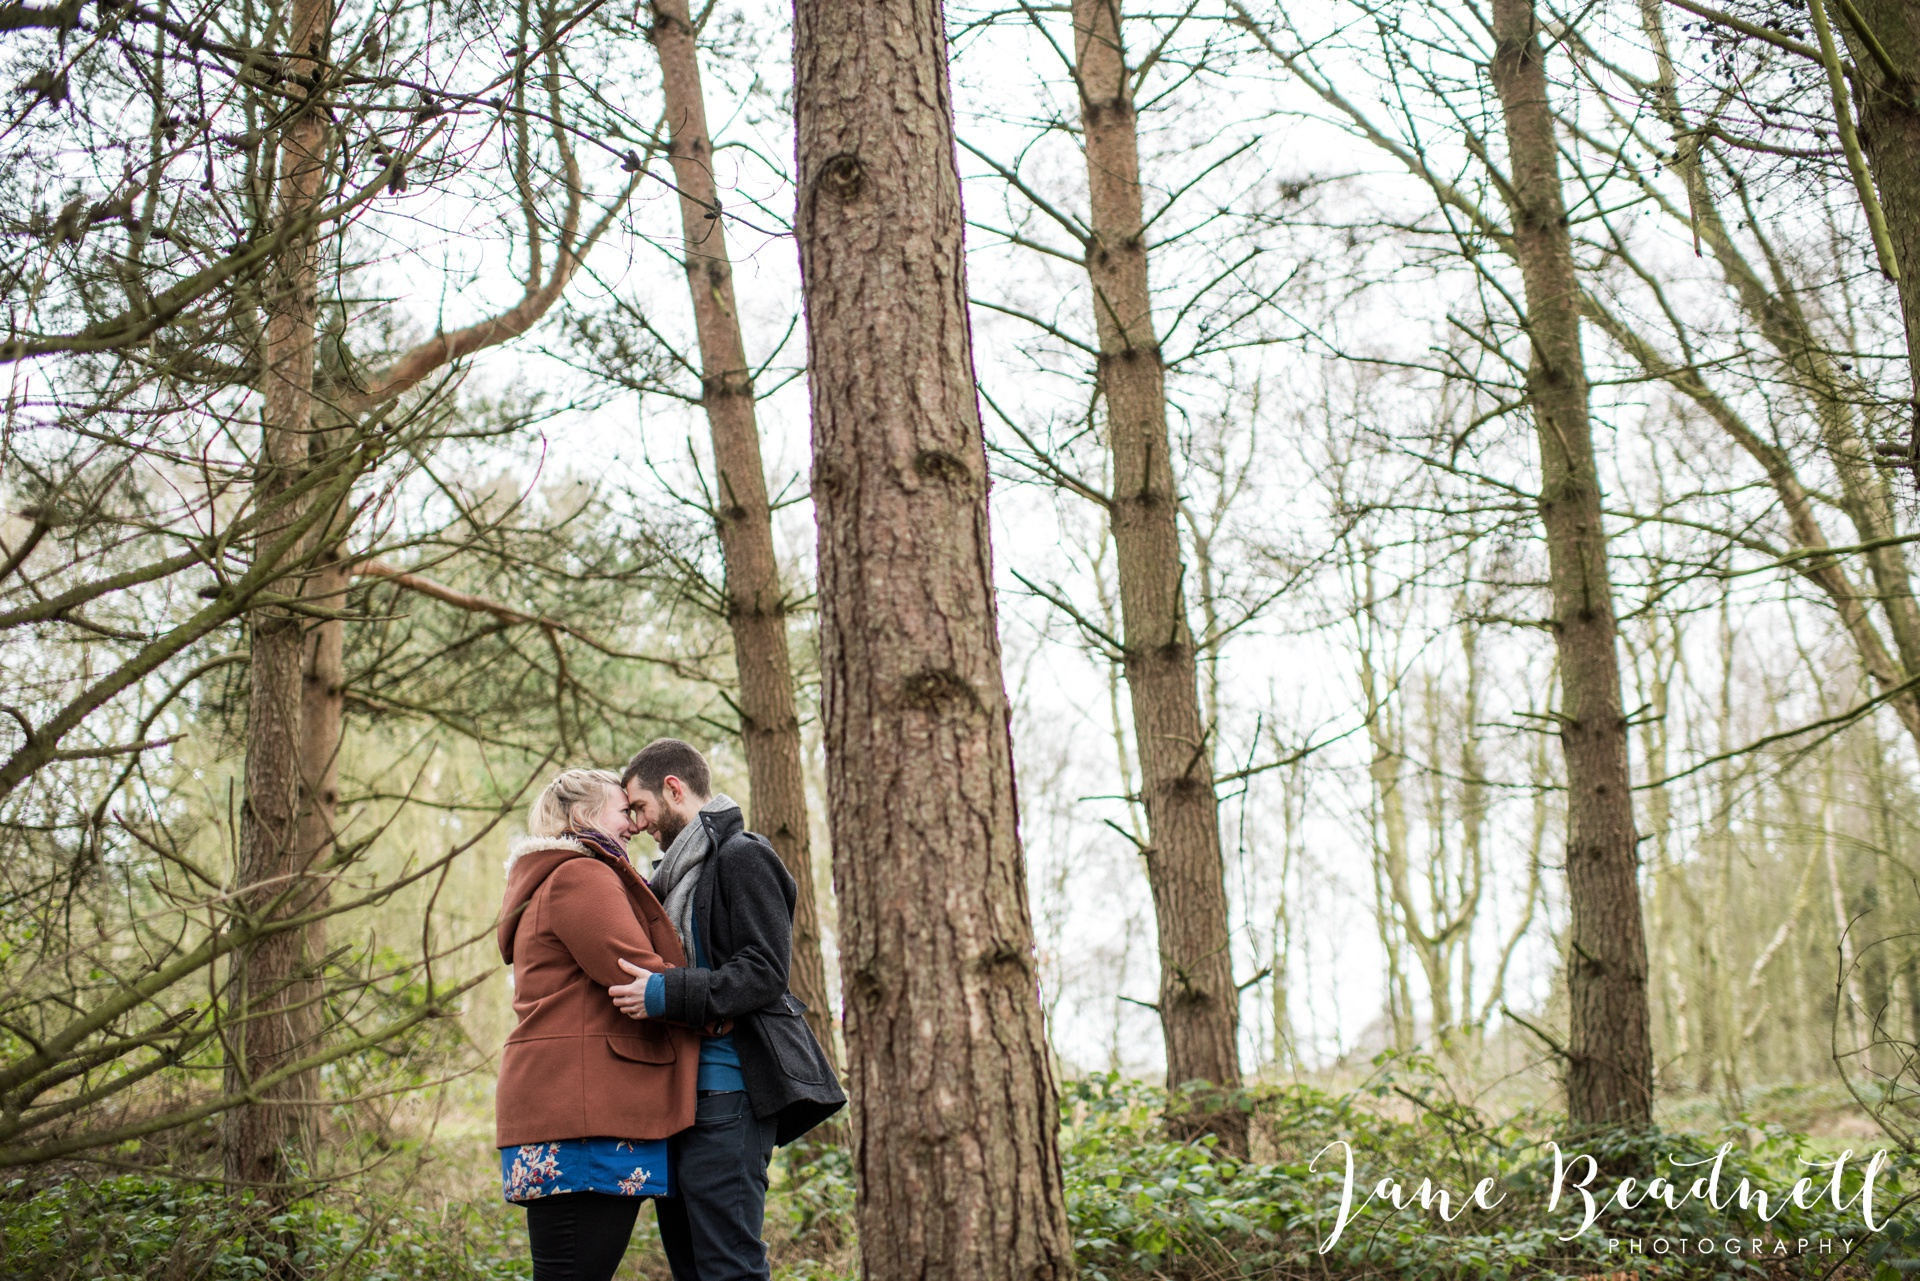 engagement photography Chevin jane beadnell wedding photographer Otley_0039